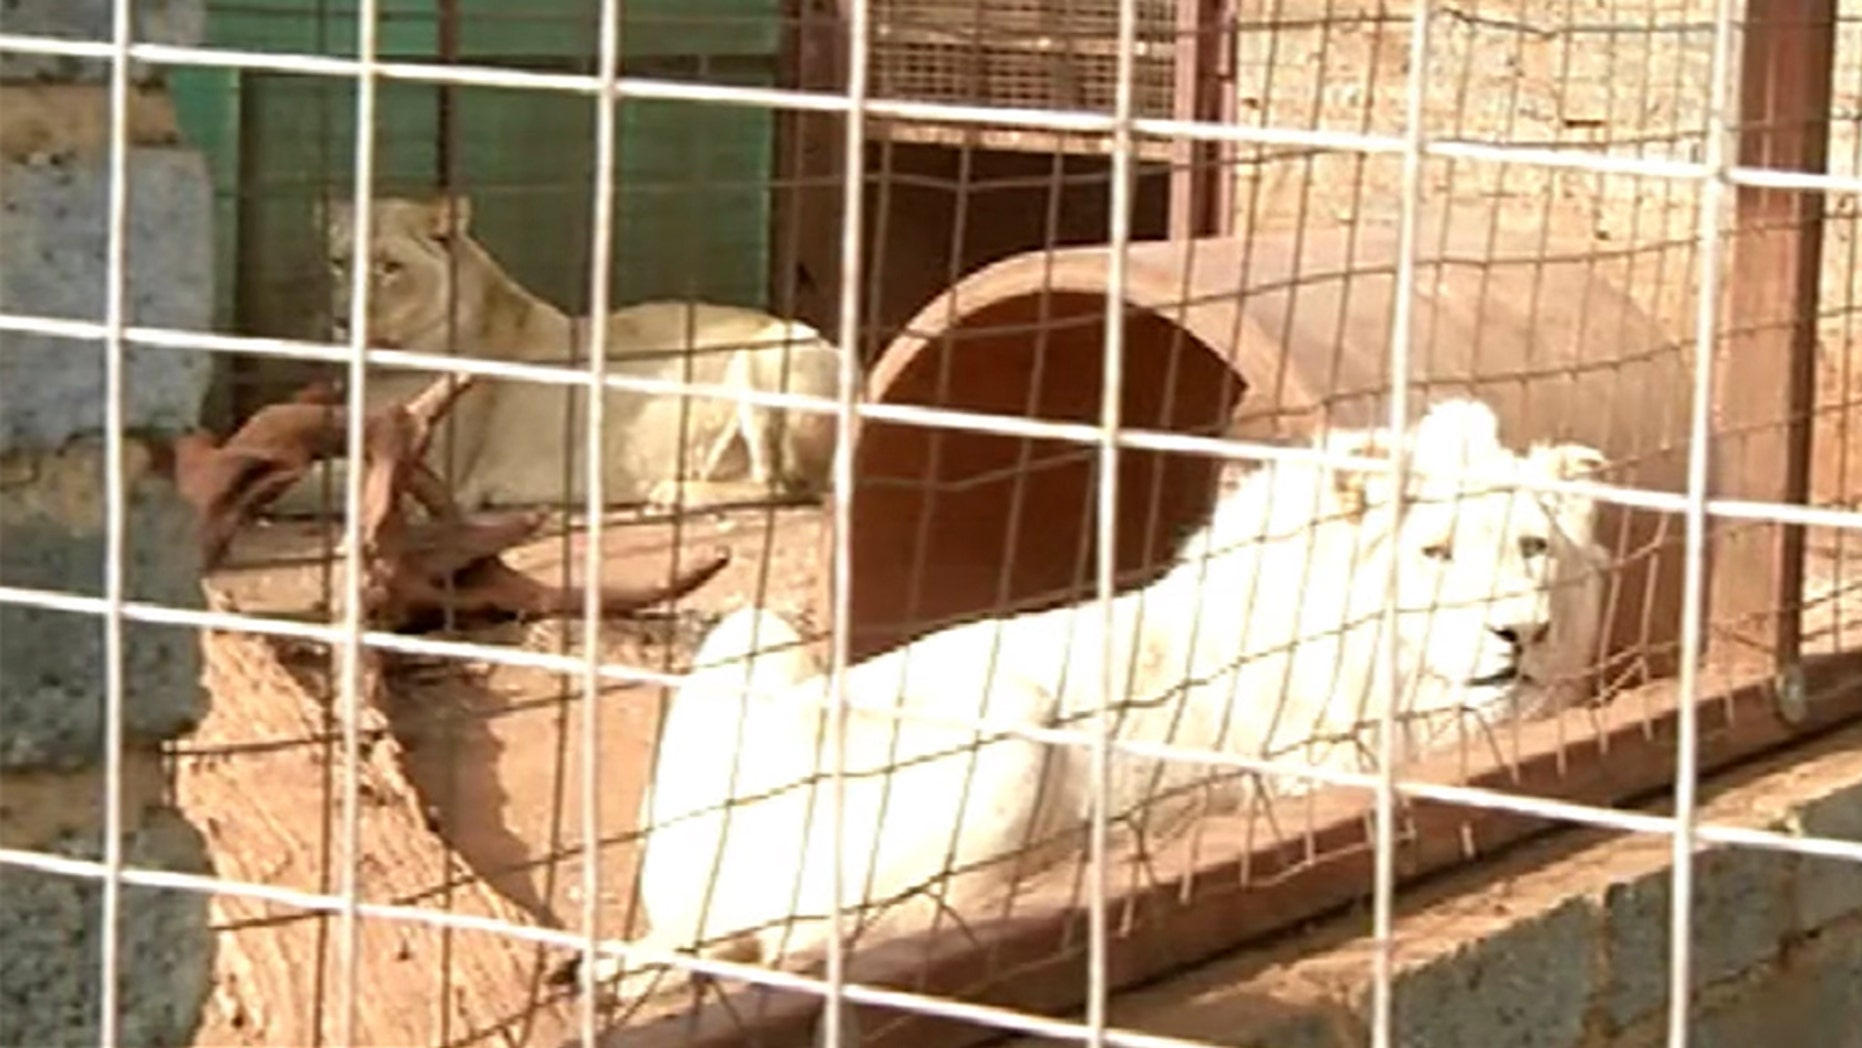 Mufasa, the three-year-old white lion, is currently in custody of the Rustenburg Wildlife Rehabilitation Centre. Its lawyer, in an online petition that has garnered more than 200,000 signatures, wrote that only 300 of his kind are left in the world, 13 of which exist in the wild.